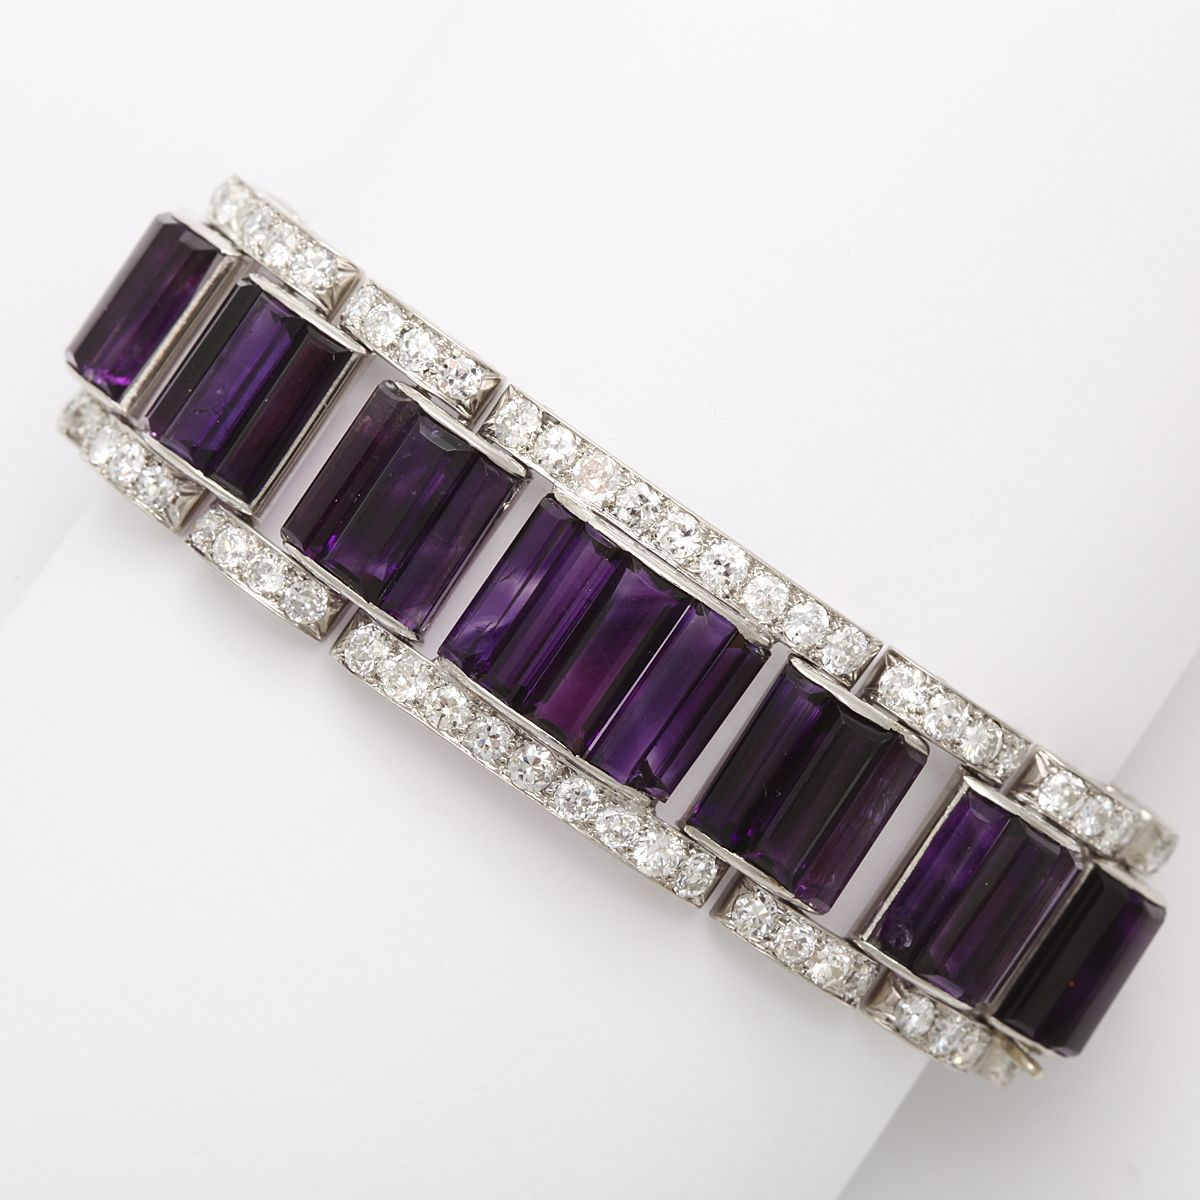 Siberia Platinum: Matched Siberian Amethyst And Diamond Bracelet Mounted In